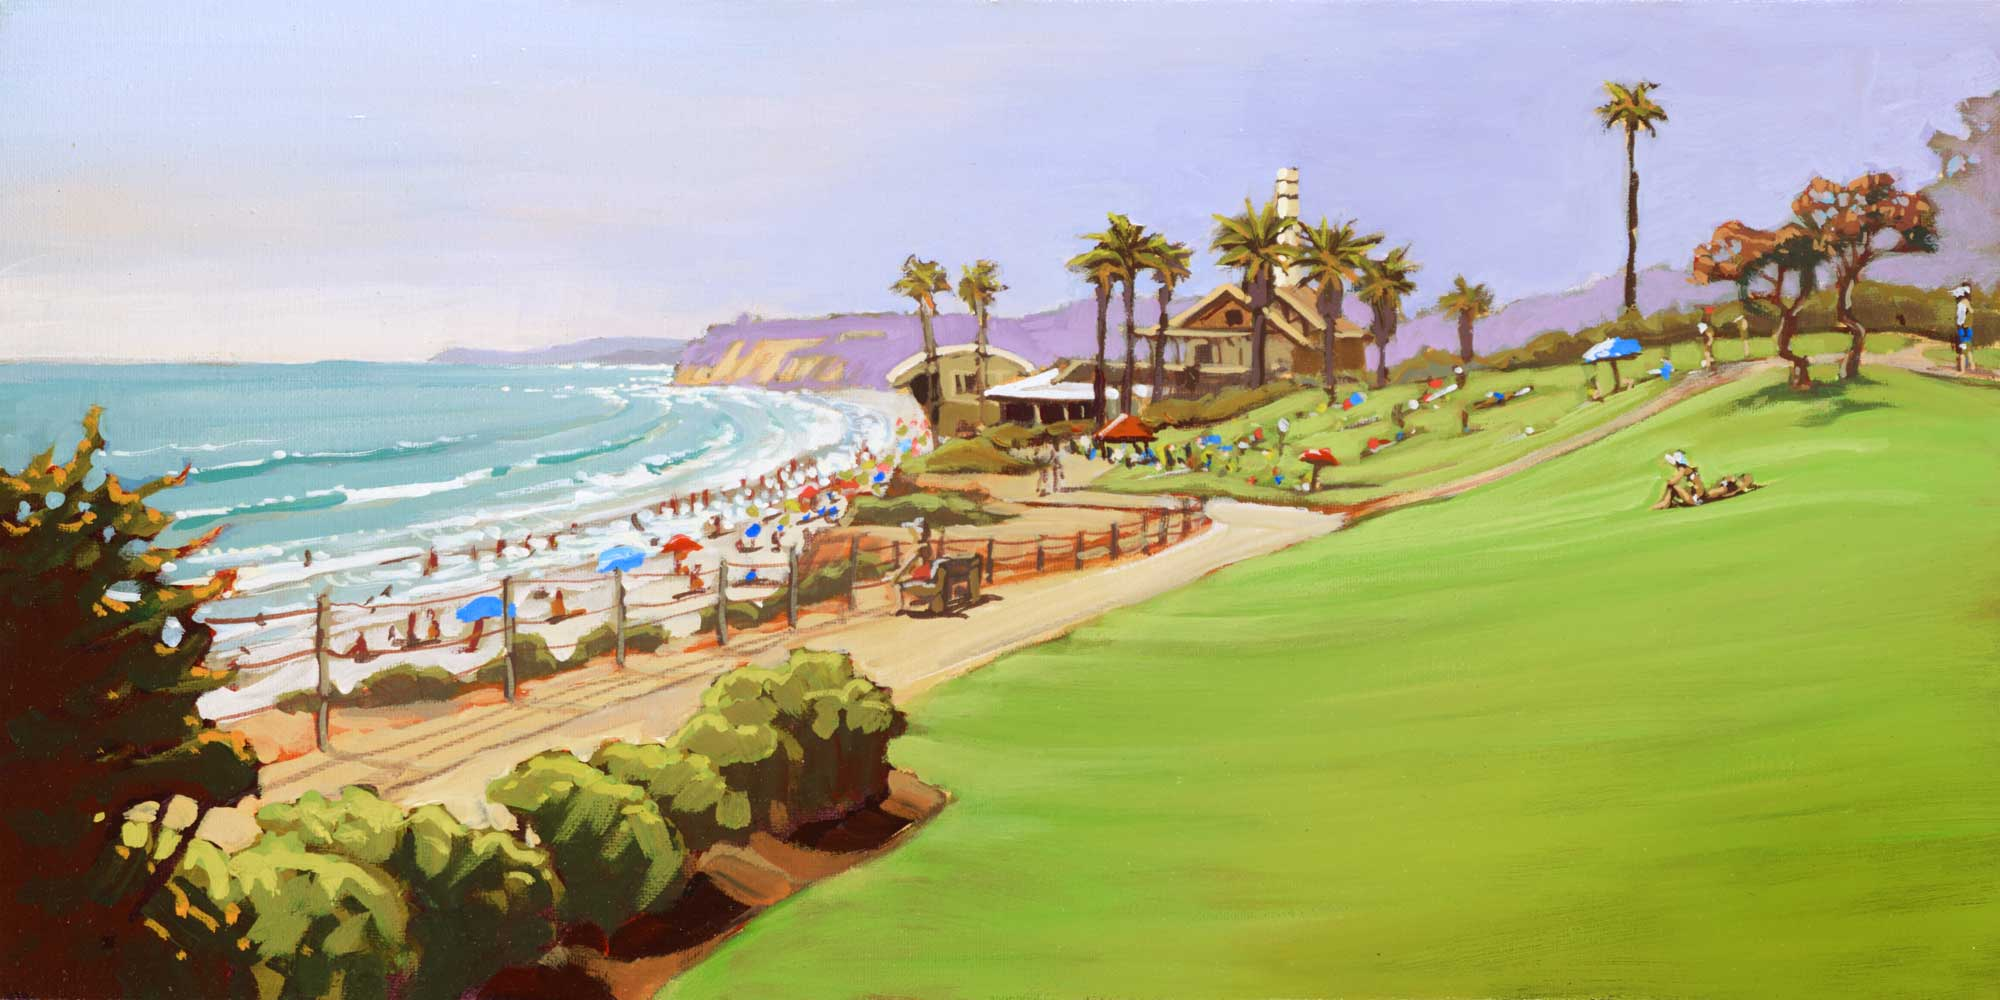 Plein air artwork of the Powerhouse at Del Mar on the san Diego coast of southern California